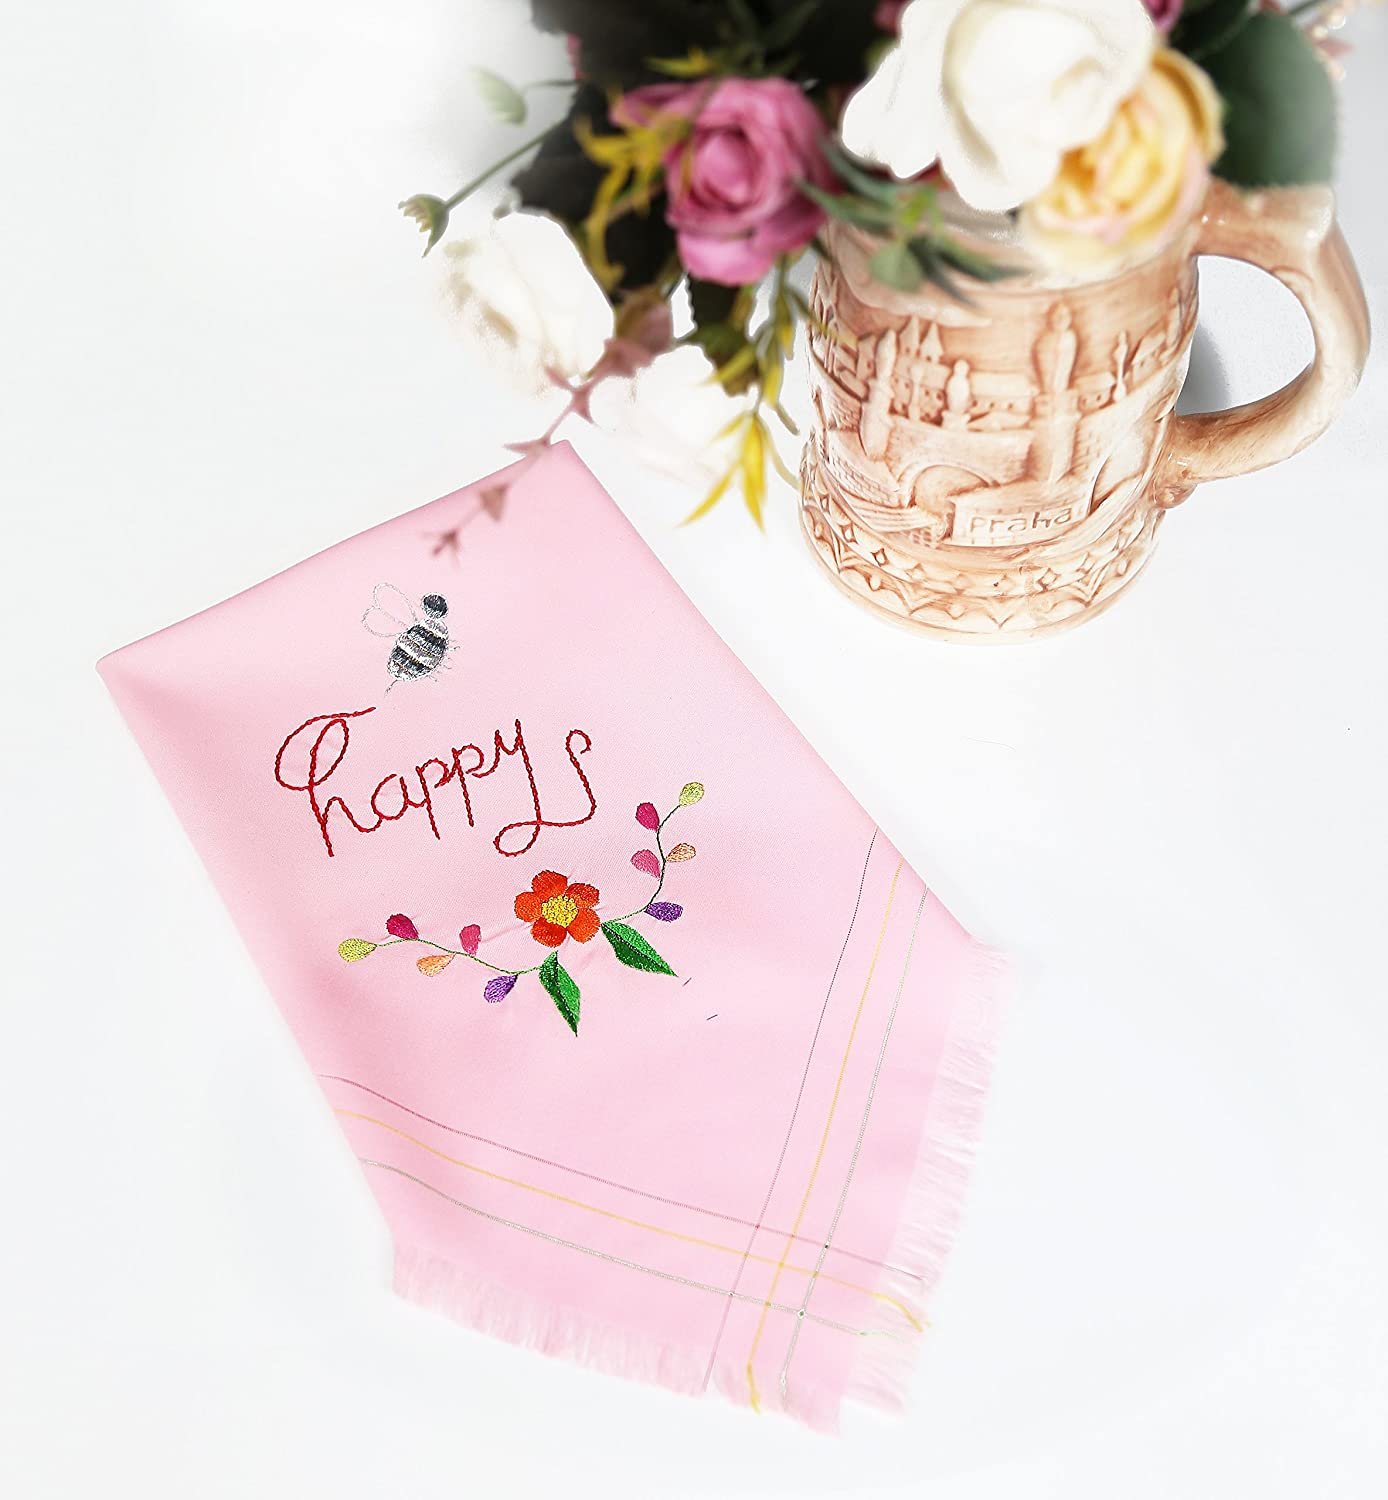 Amazon.com: Happy And Bee Pink Handkerchief - Hanky Embroidery With ...